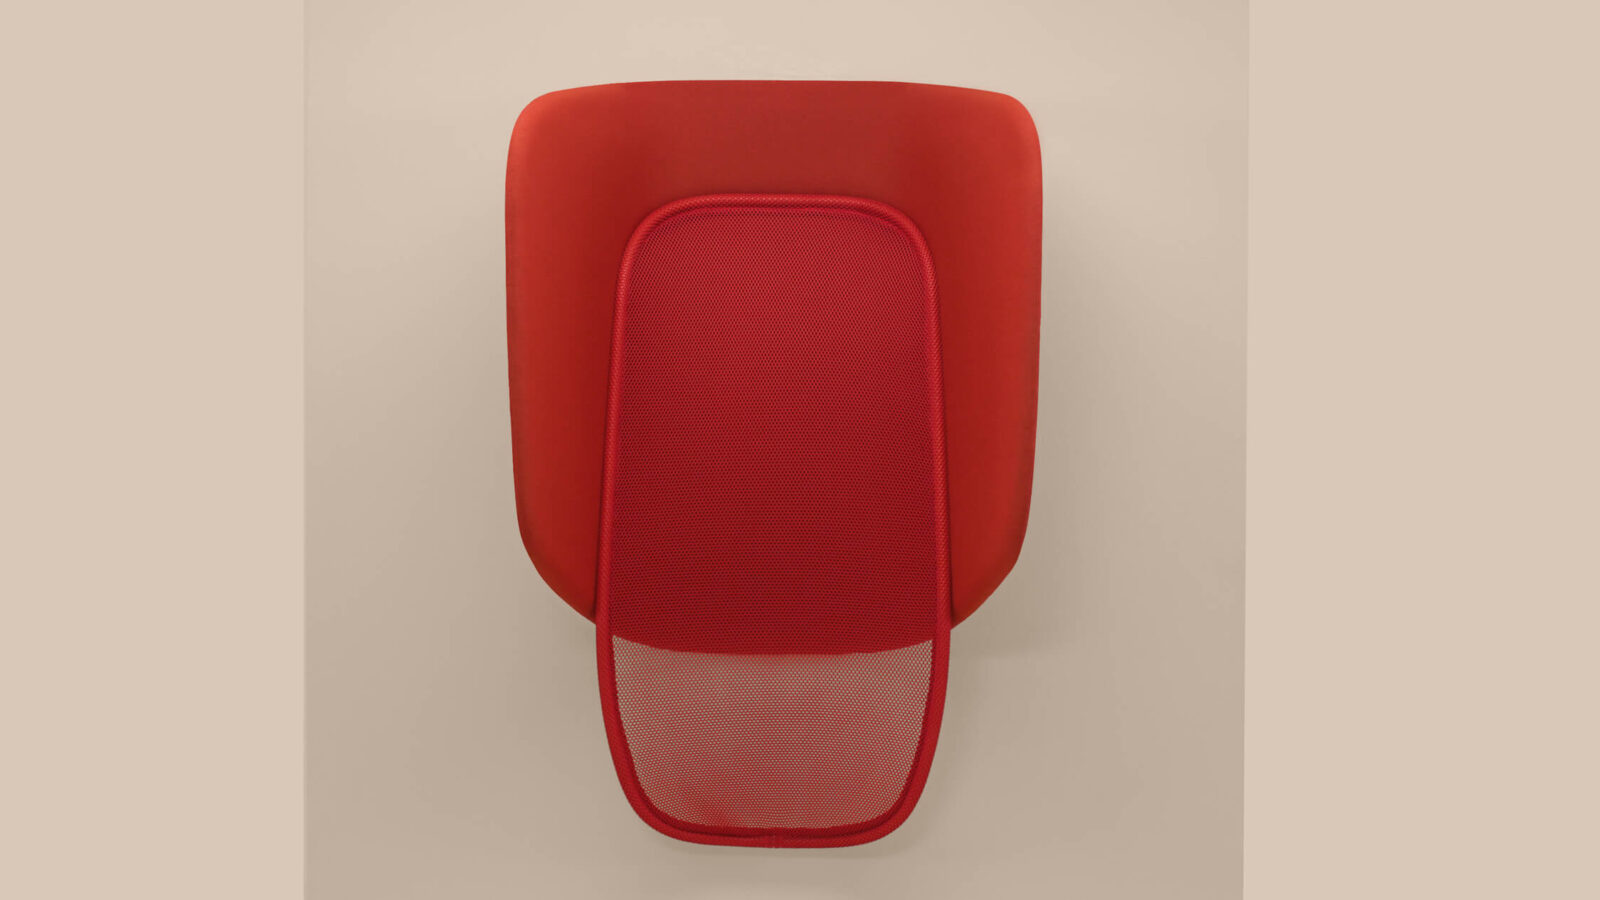 Antoine Lesure and Marc Venot's Lapso design is pictured. It is used as a standing resting station. The item pictured is a deep red colour.